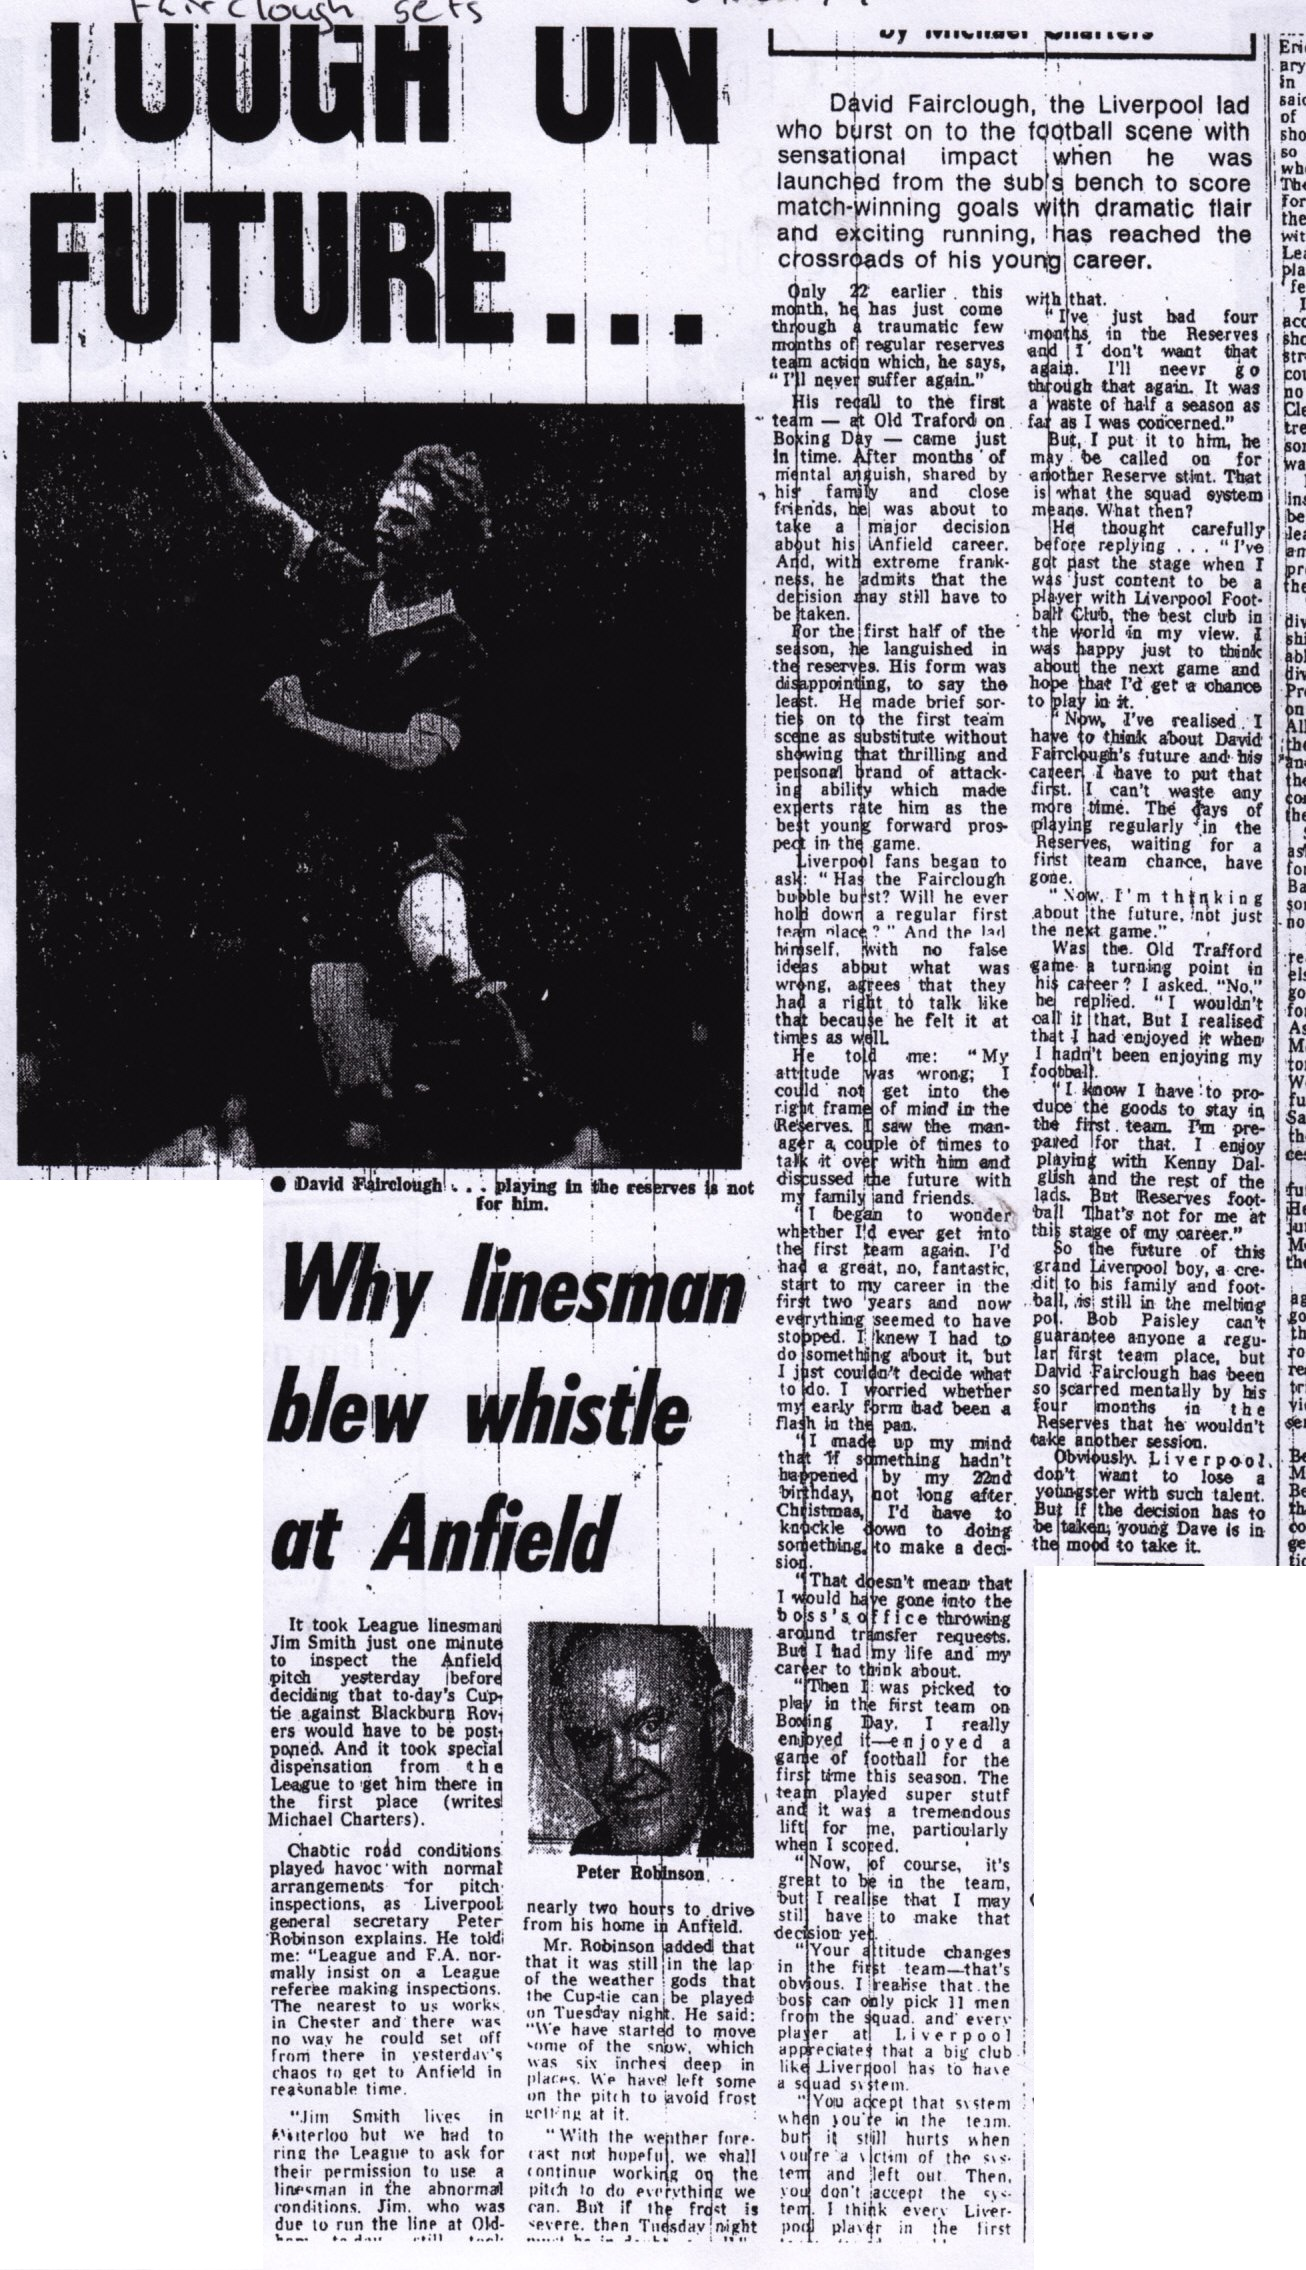 Fairclough on his future at Liverpool - 27 January 1979